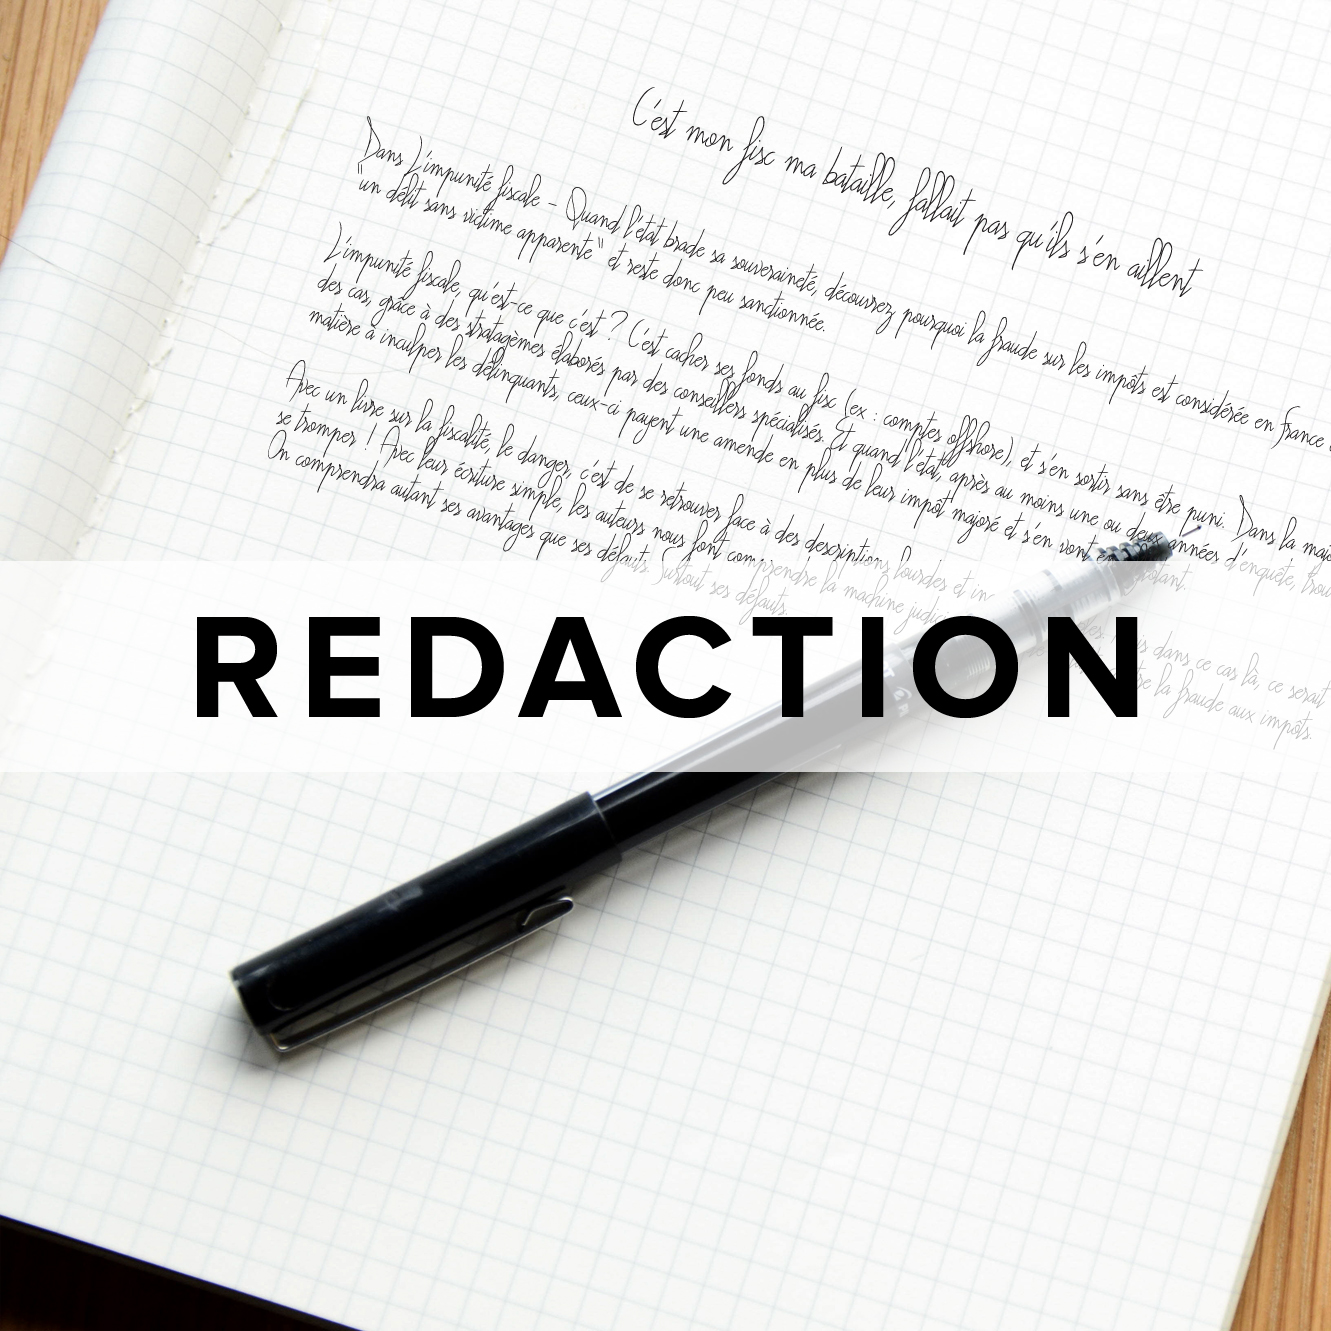 redaction agence de communication le plan com